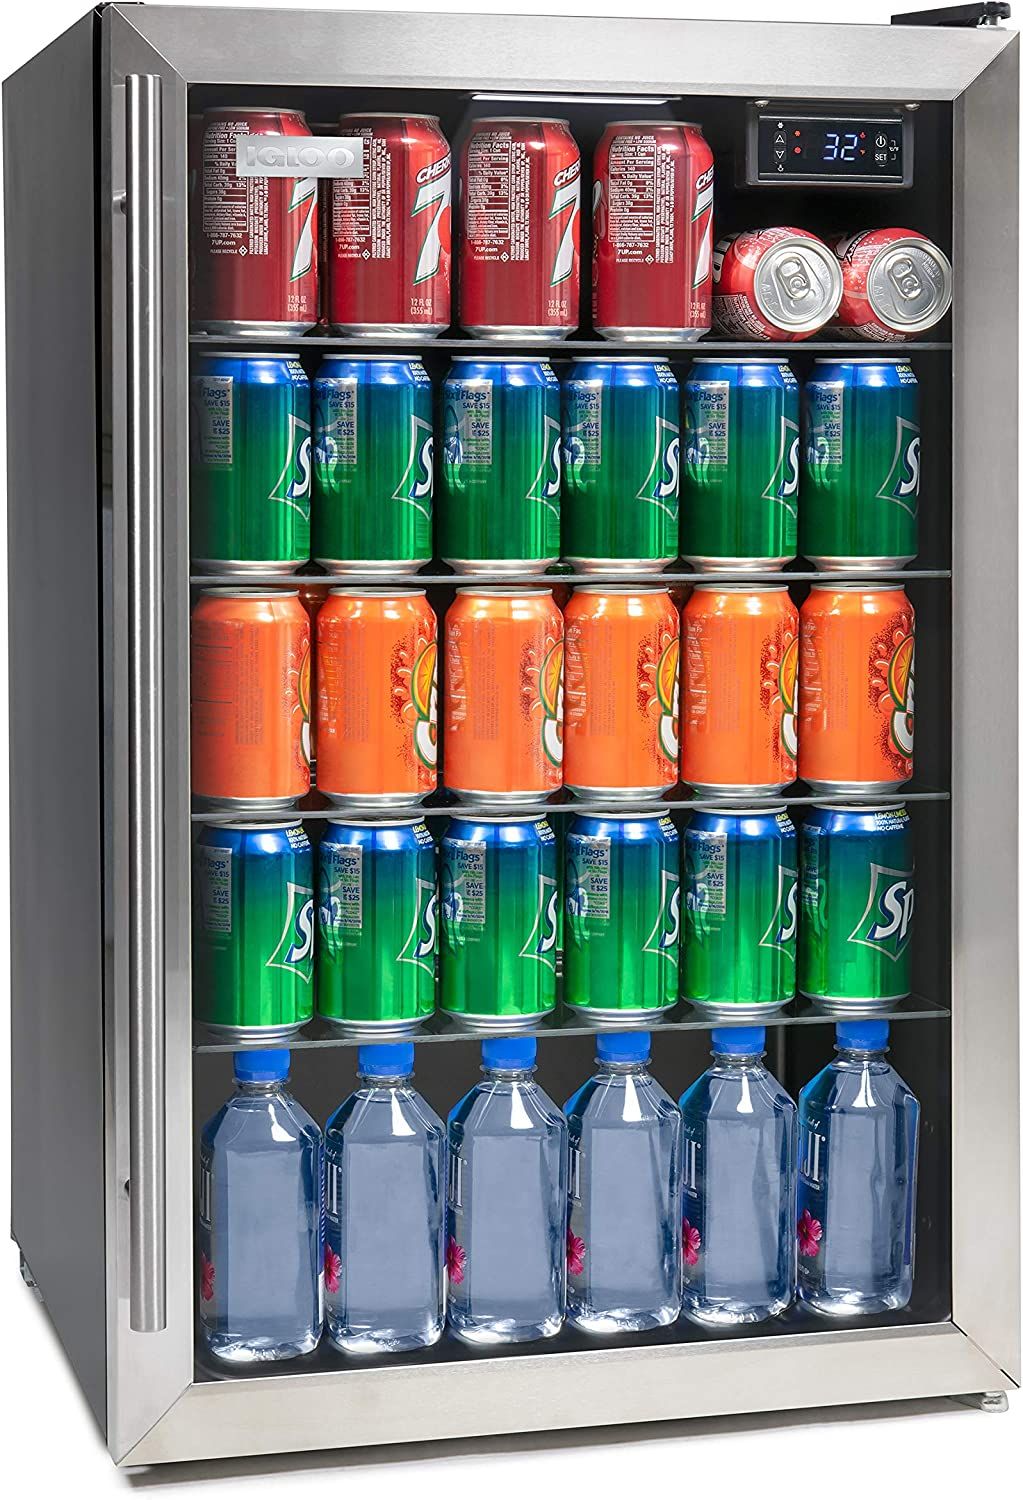 Igloo IBC41SS New And Improved 180-Can Capacity Stainless Steel LED-Lighted Digitally Controlled Double-Pane Glass Door Beverage Center Refrigerator and Cooler for Soda, Beer, Wine and Water